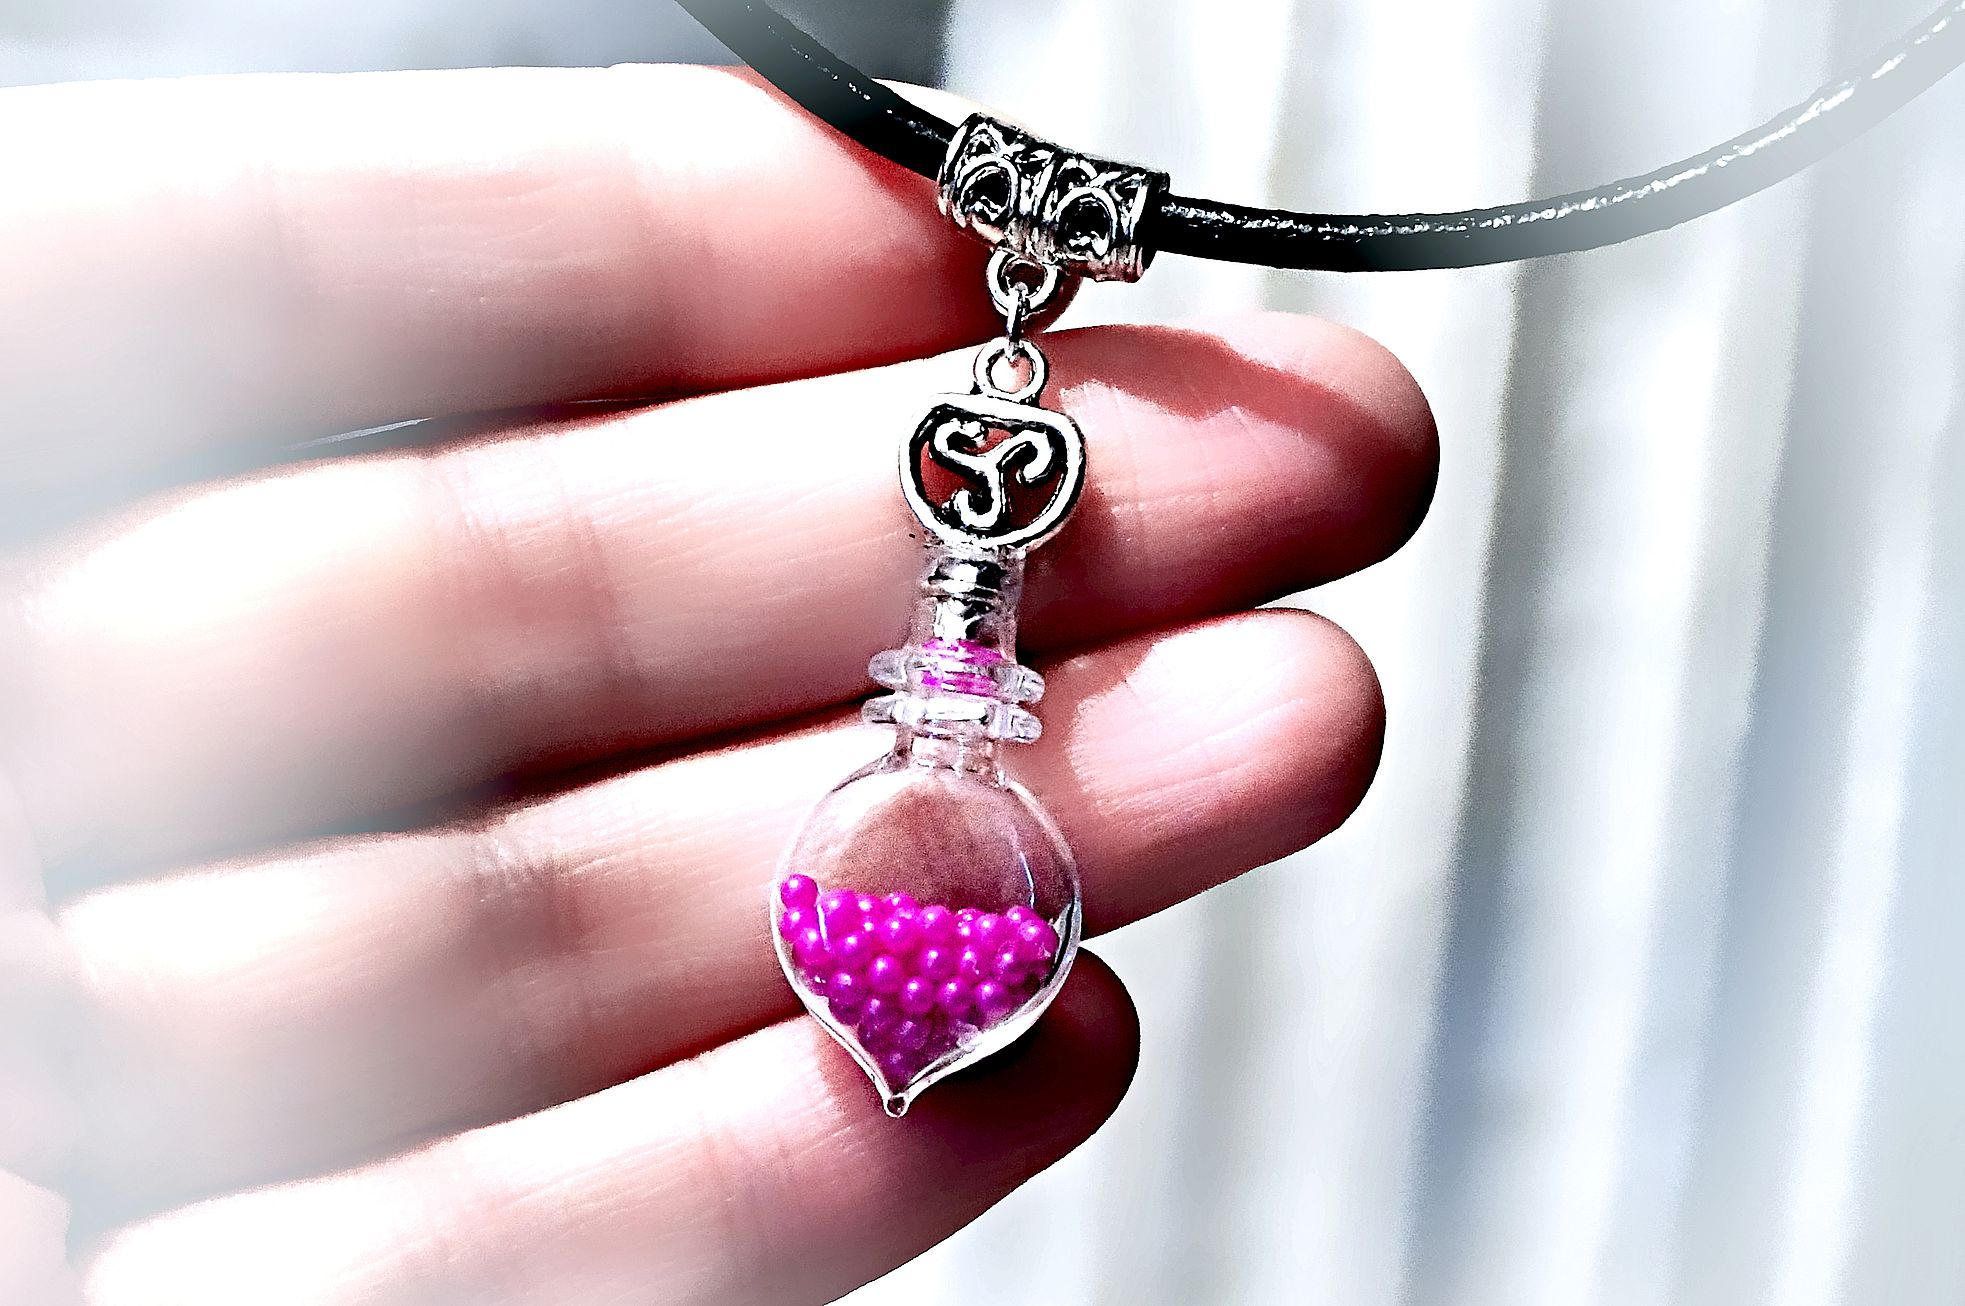 triskele bdsm symbol bottle necklace